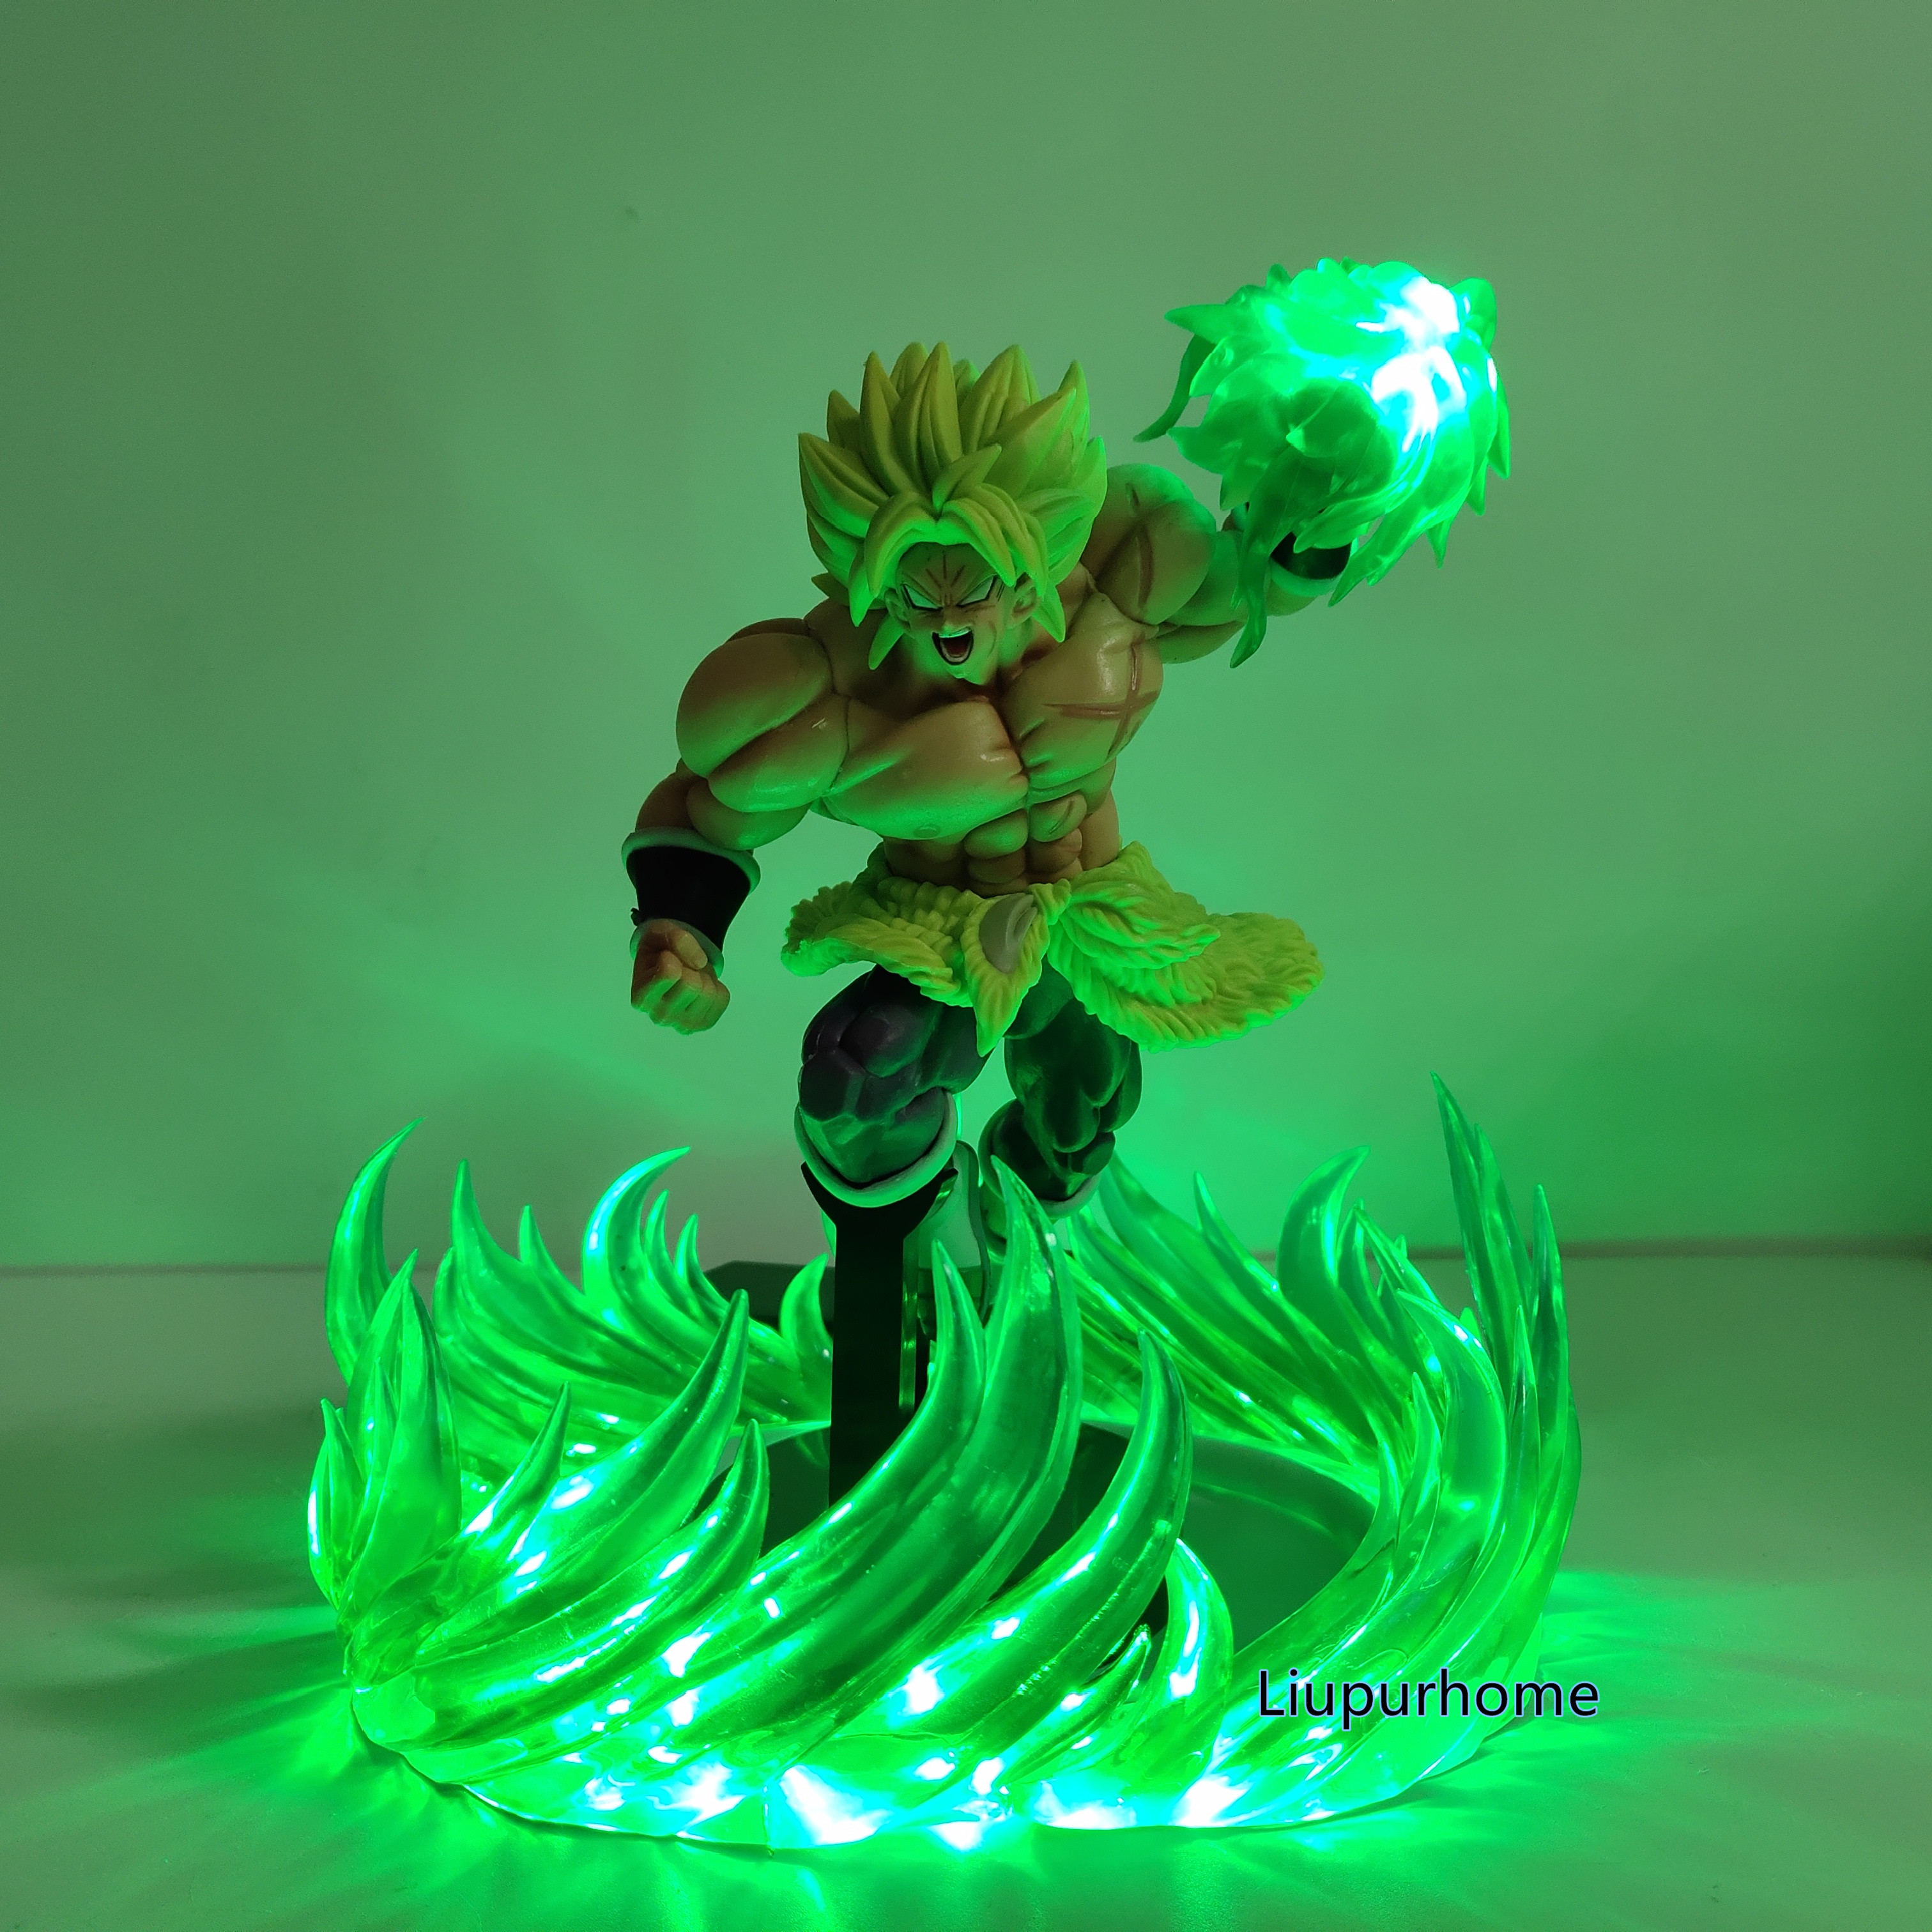 Lampara Broly Dragon Ball Lamp Super Saiyan Green Power Led Lighting Dragon Ball Super Broli Lamparas DBZ